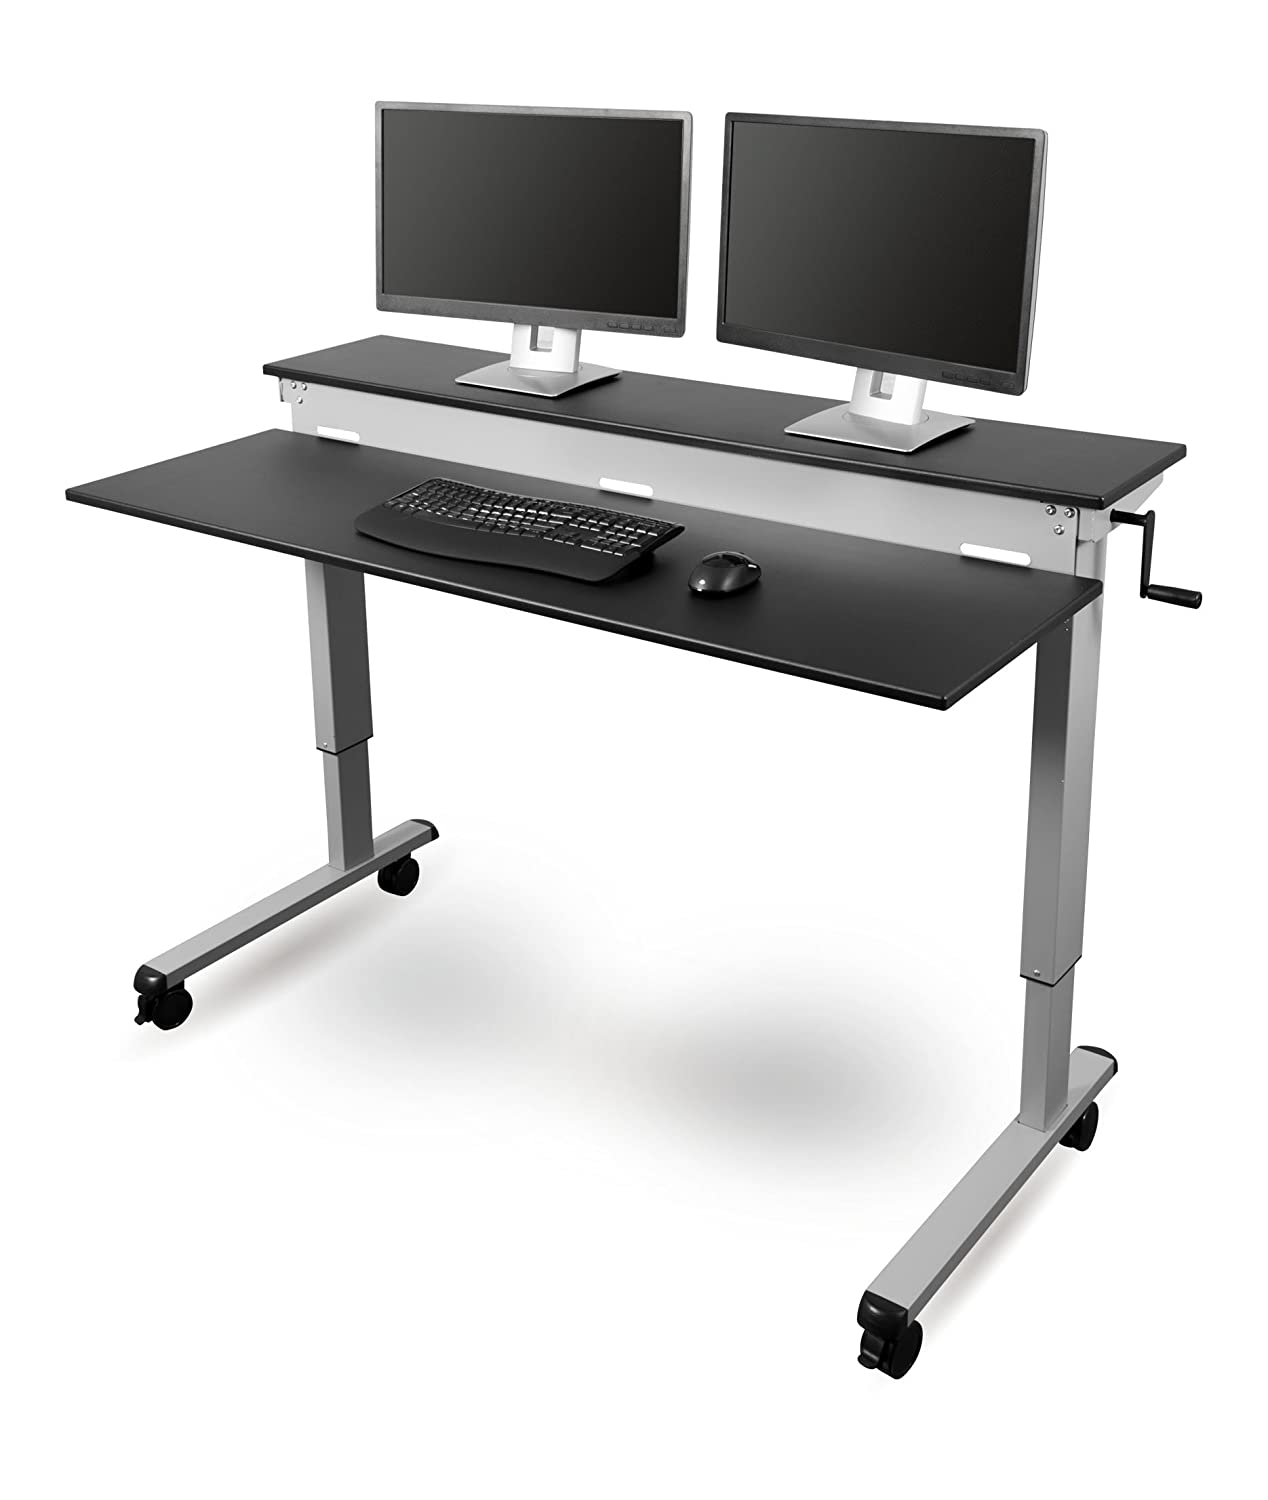 Stand Up Desk >> Stand Up Desk Store Crank Adjustable Sit To Stand Up Computer Desk Heavy Duty Steel Frame 60 Inches Silver Frame Black Top